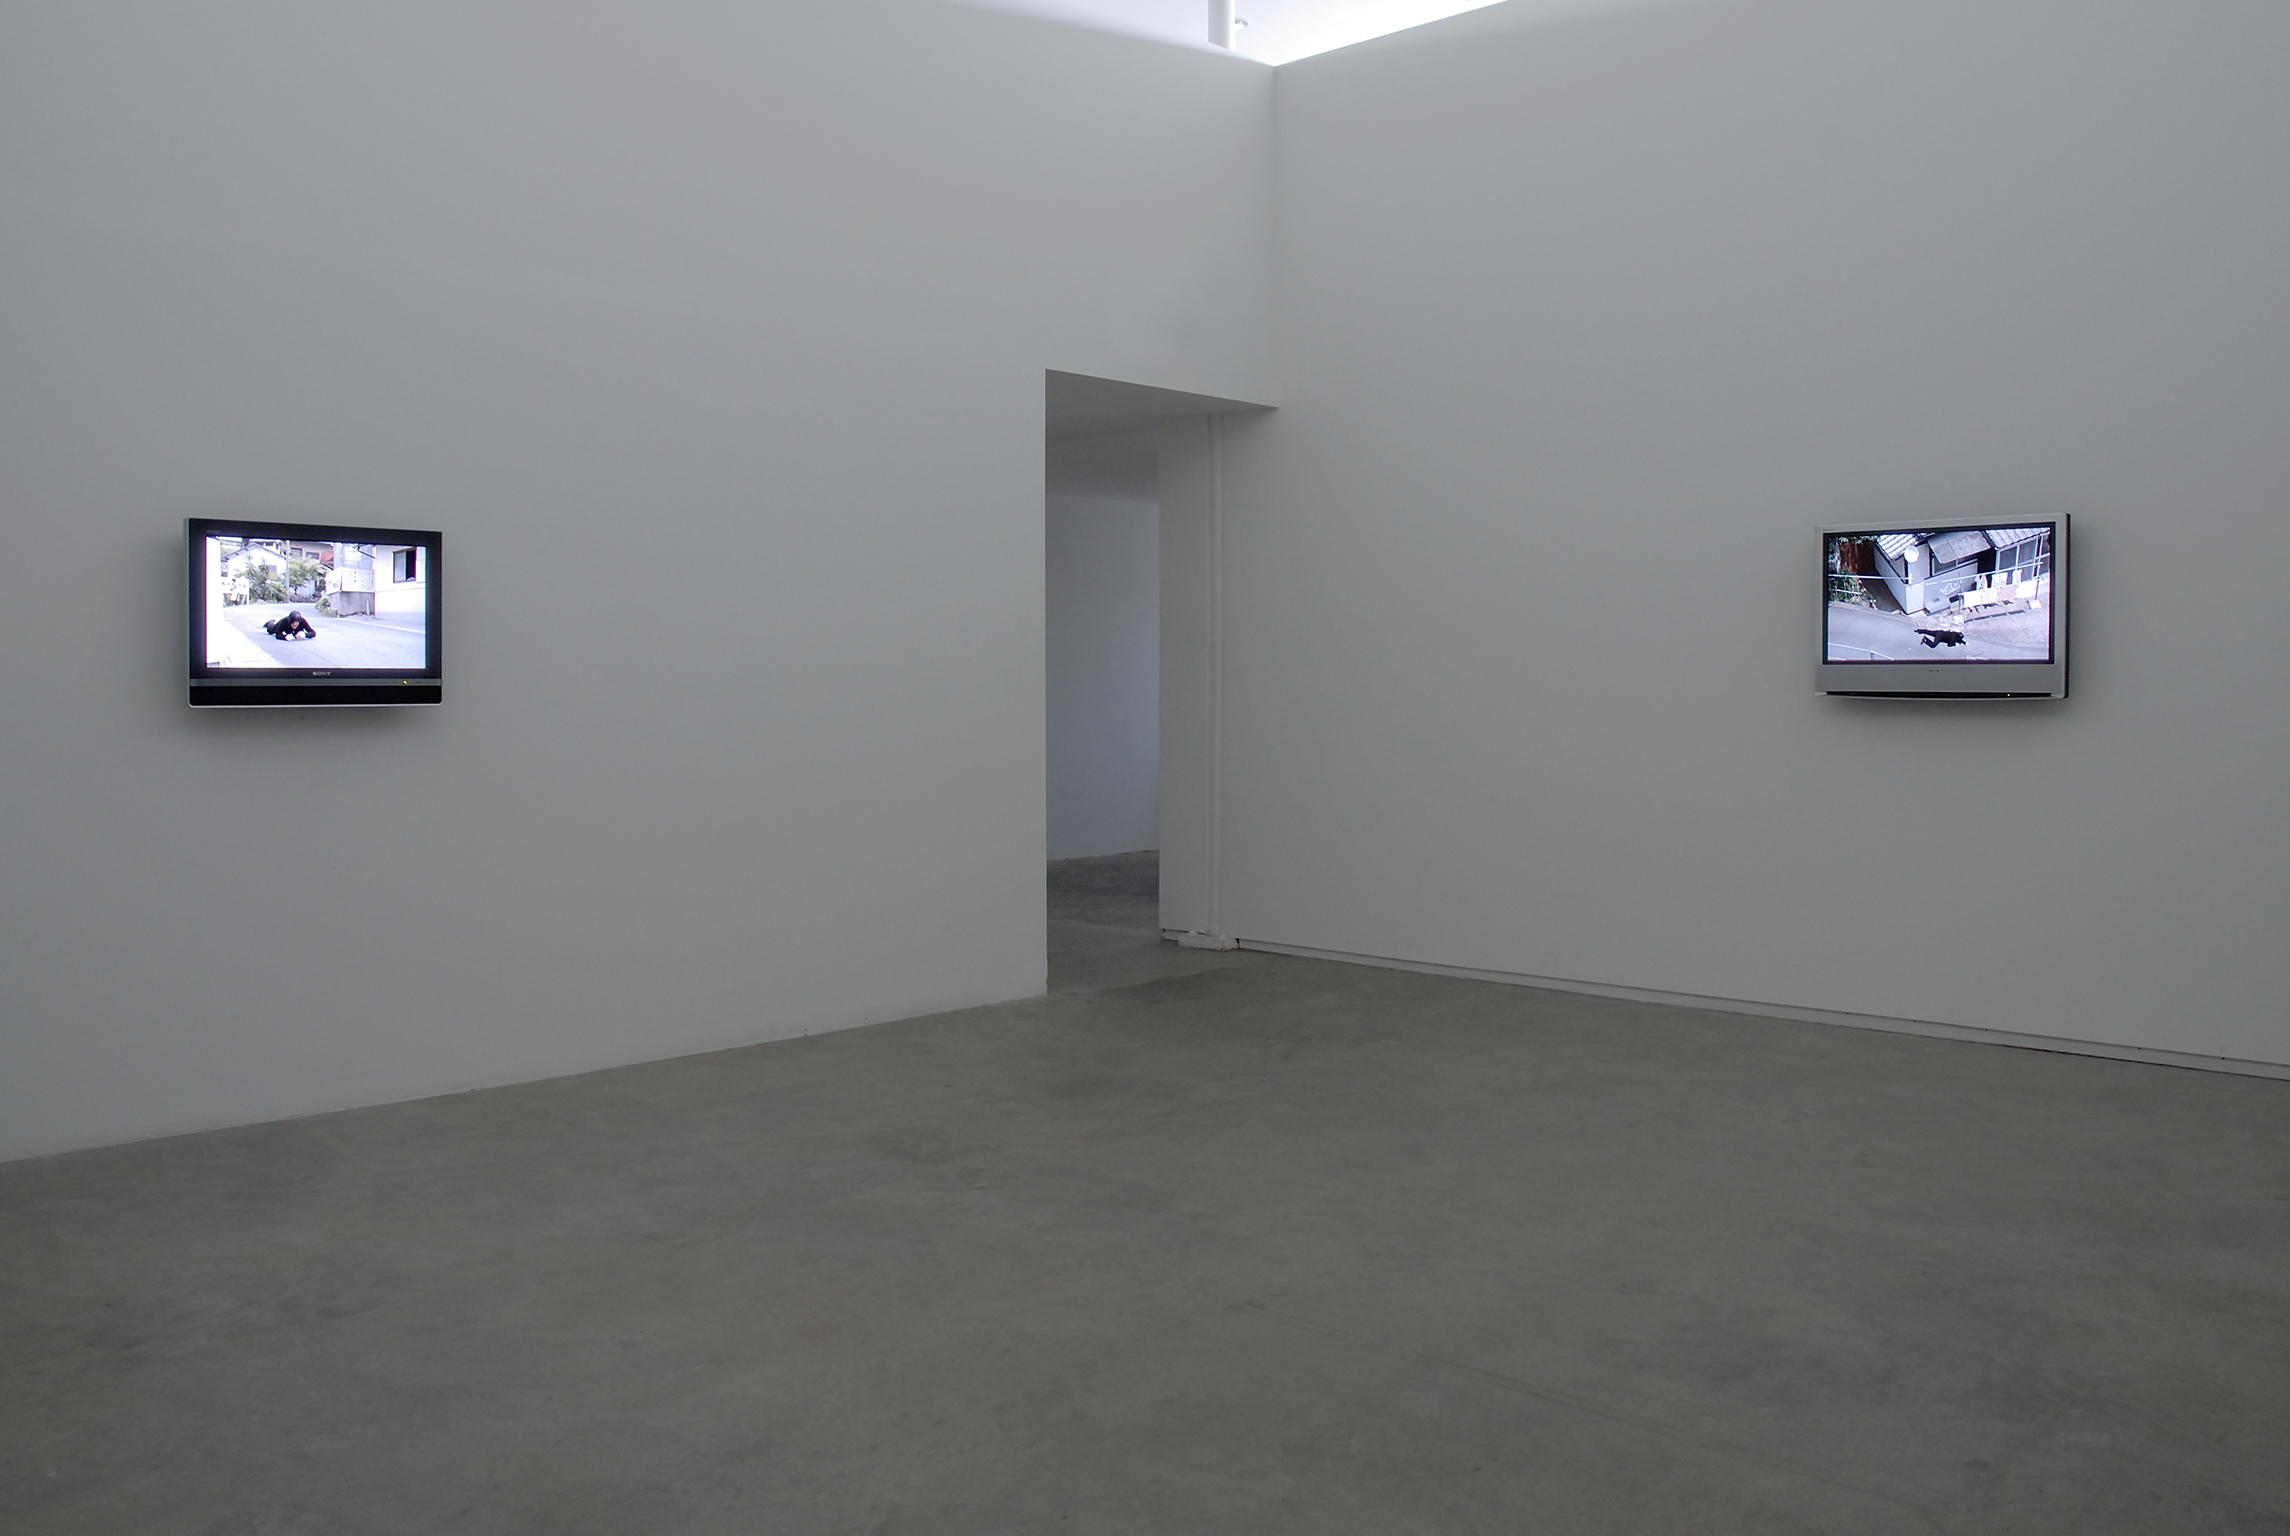 Jin-me Yoon, installation view, Catriona Jeffries, 2009 by